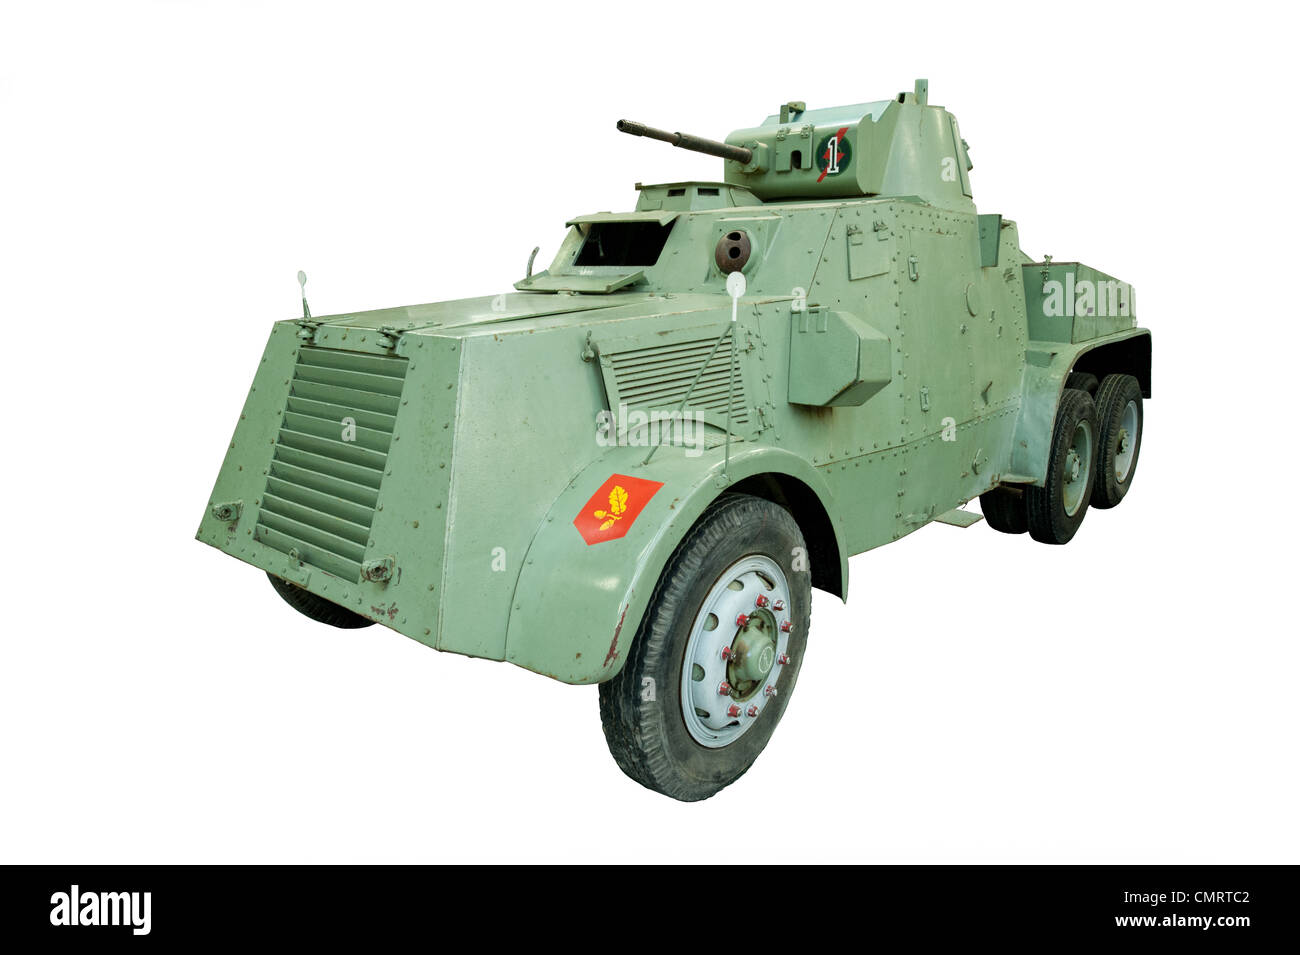 A cut out of a Leyland Armoured Car used by british & allied forces during WW2 - Stock Image